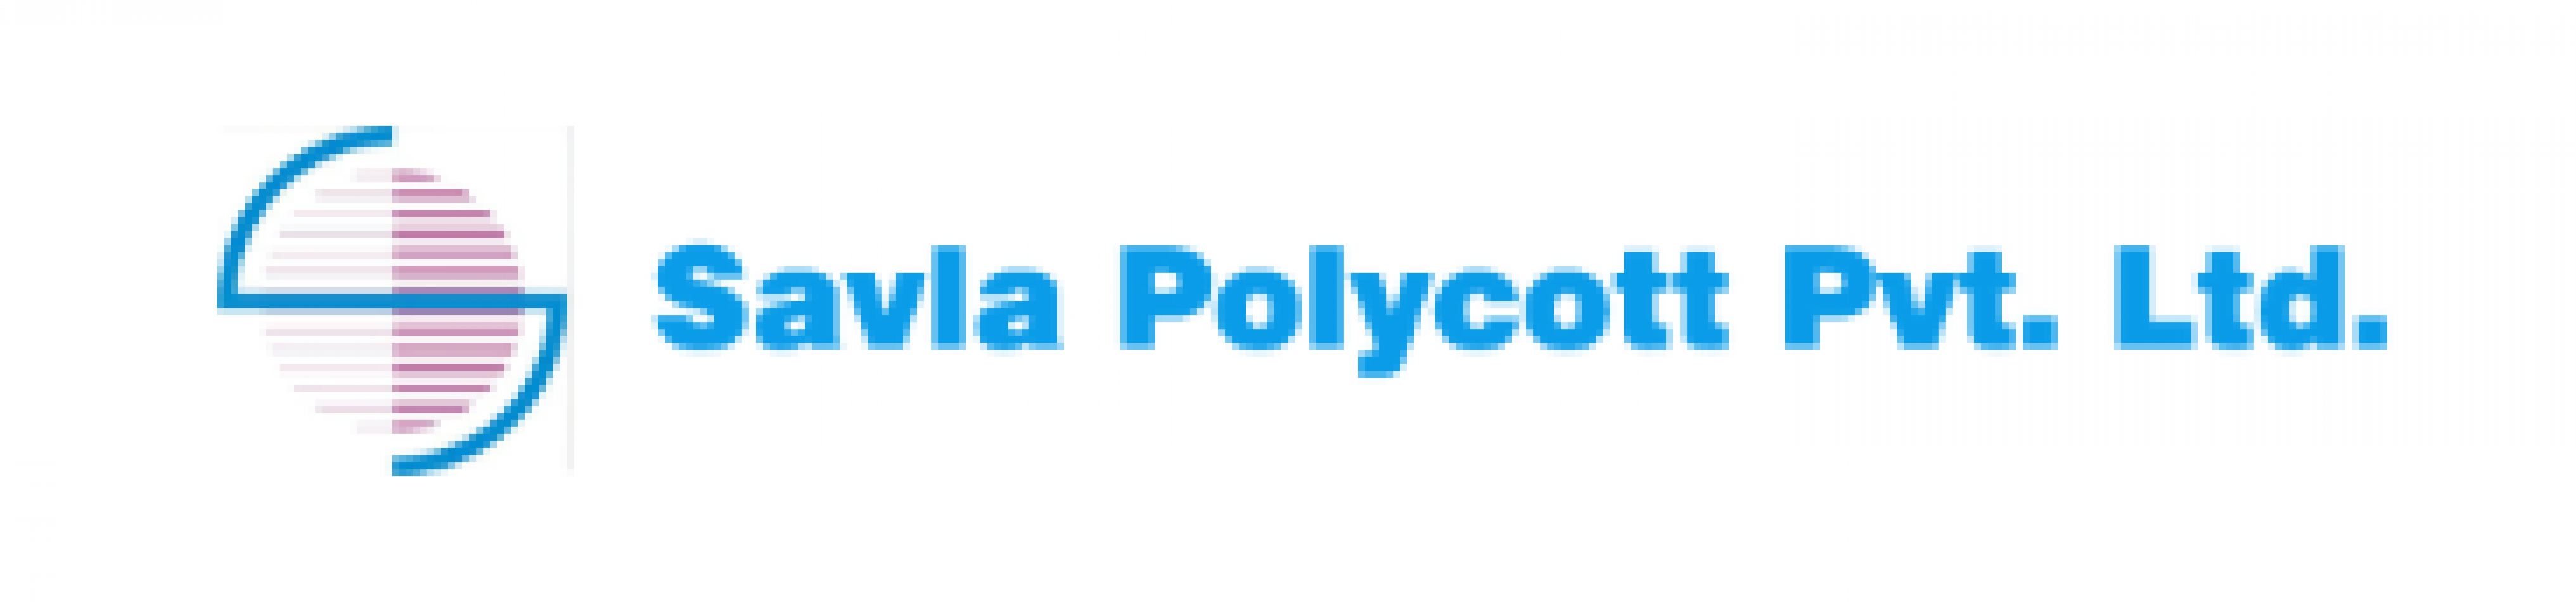 SAVLA POLYCOTT PVT. LTD.